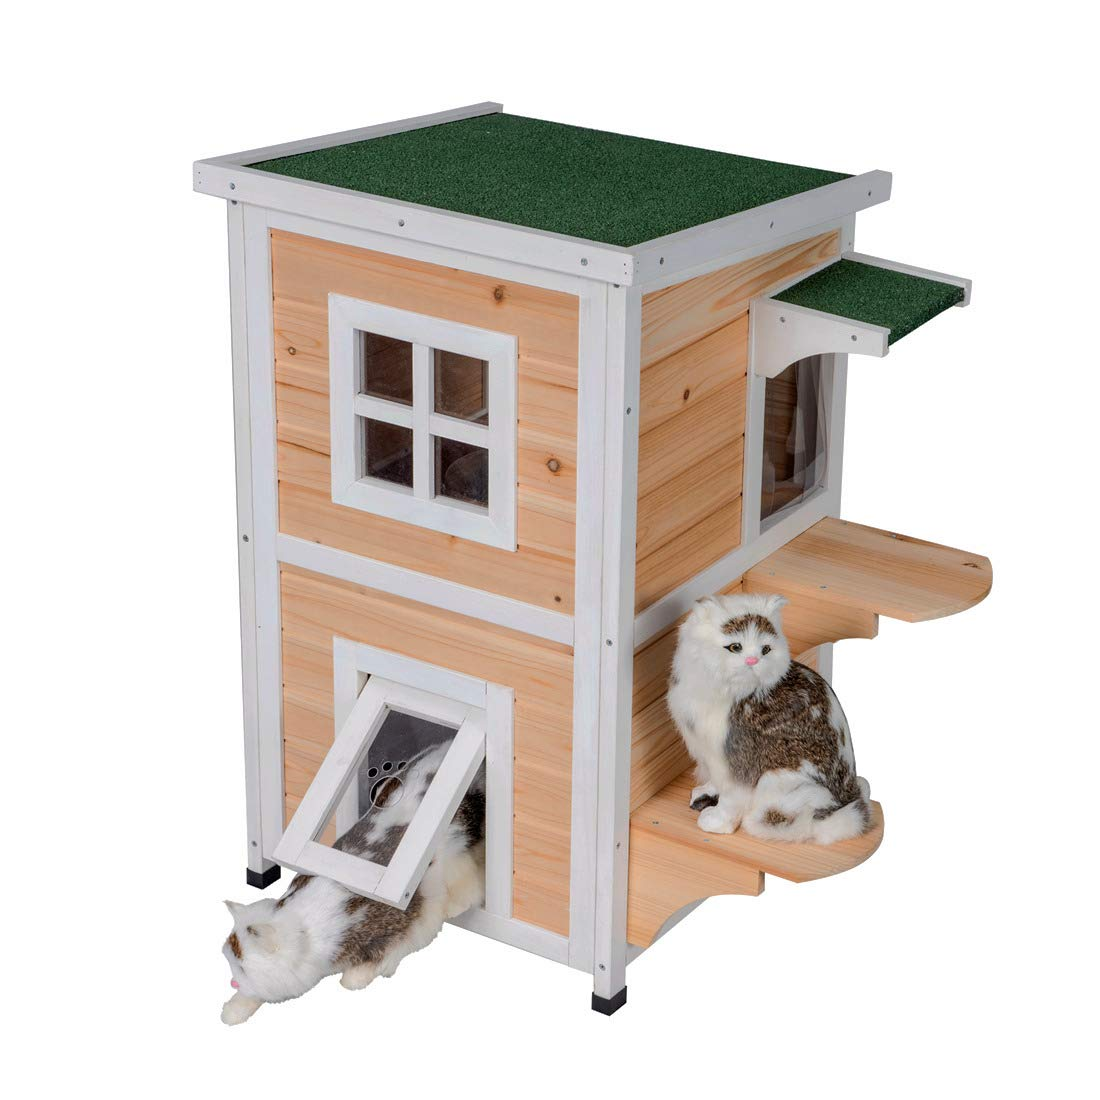 Good Life Weatherproof Outdoor Indoor Two Floors Nature Wood Cat House Pet Home Furniture Cat Shelter Small Pet Condo with Stairs for Small & Middle Cats by GOOD LIFE USA